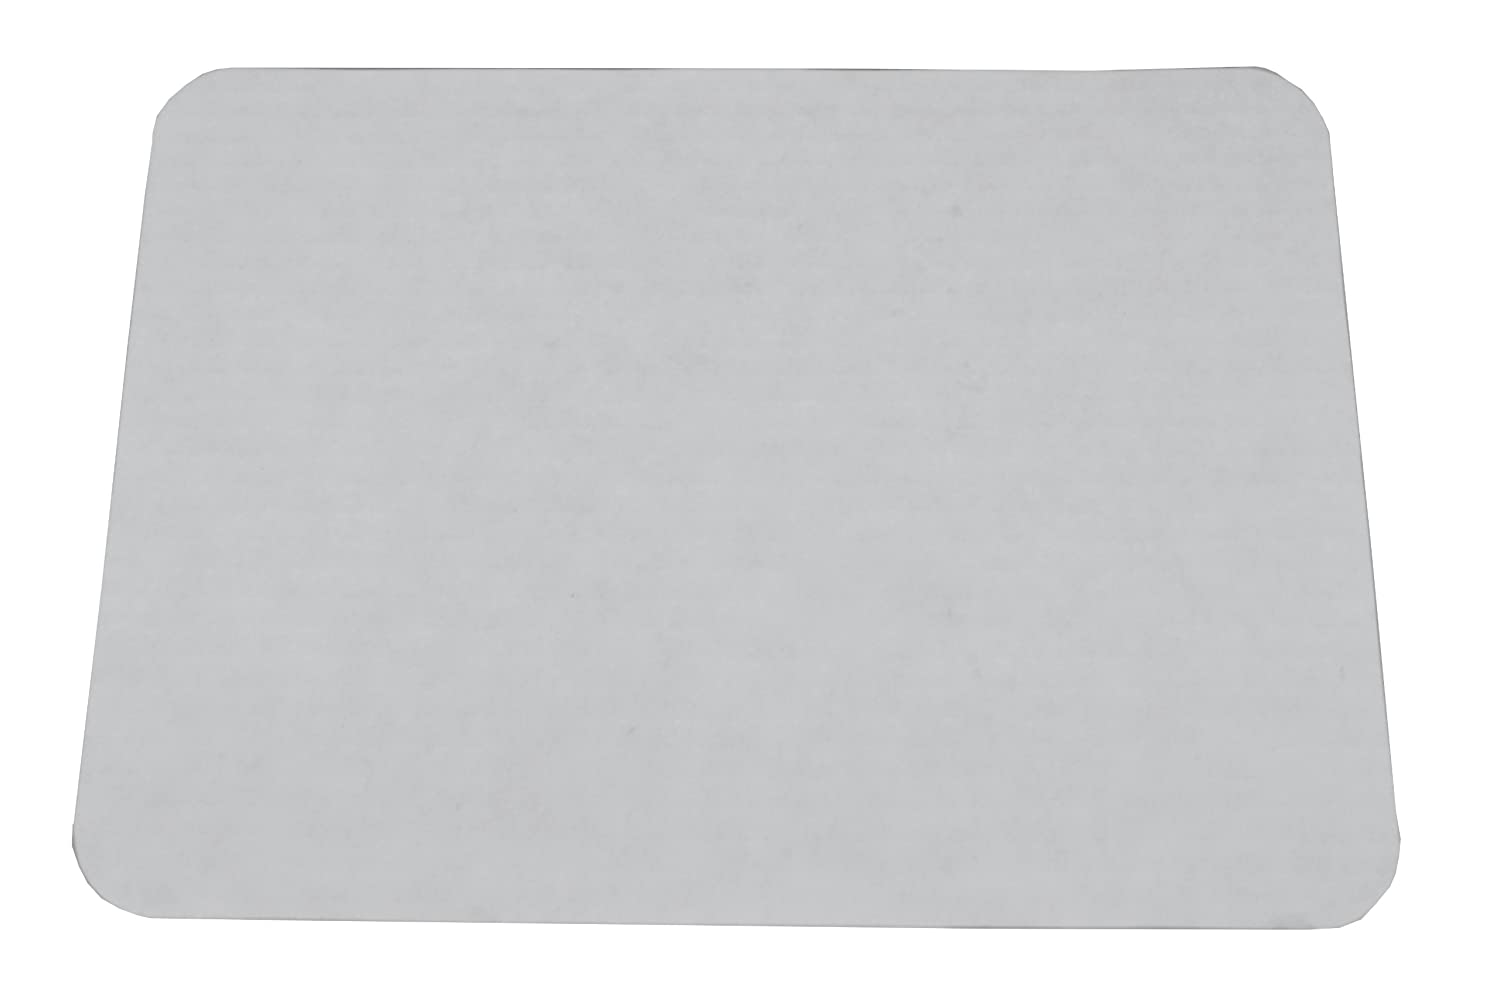 Southern Champion Tray 11949 Corrugated Uncoated Single Wall Cake Pad, Quarter Sheet, 14